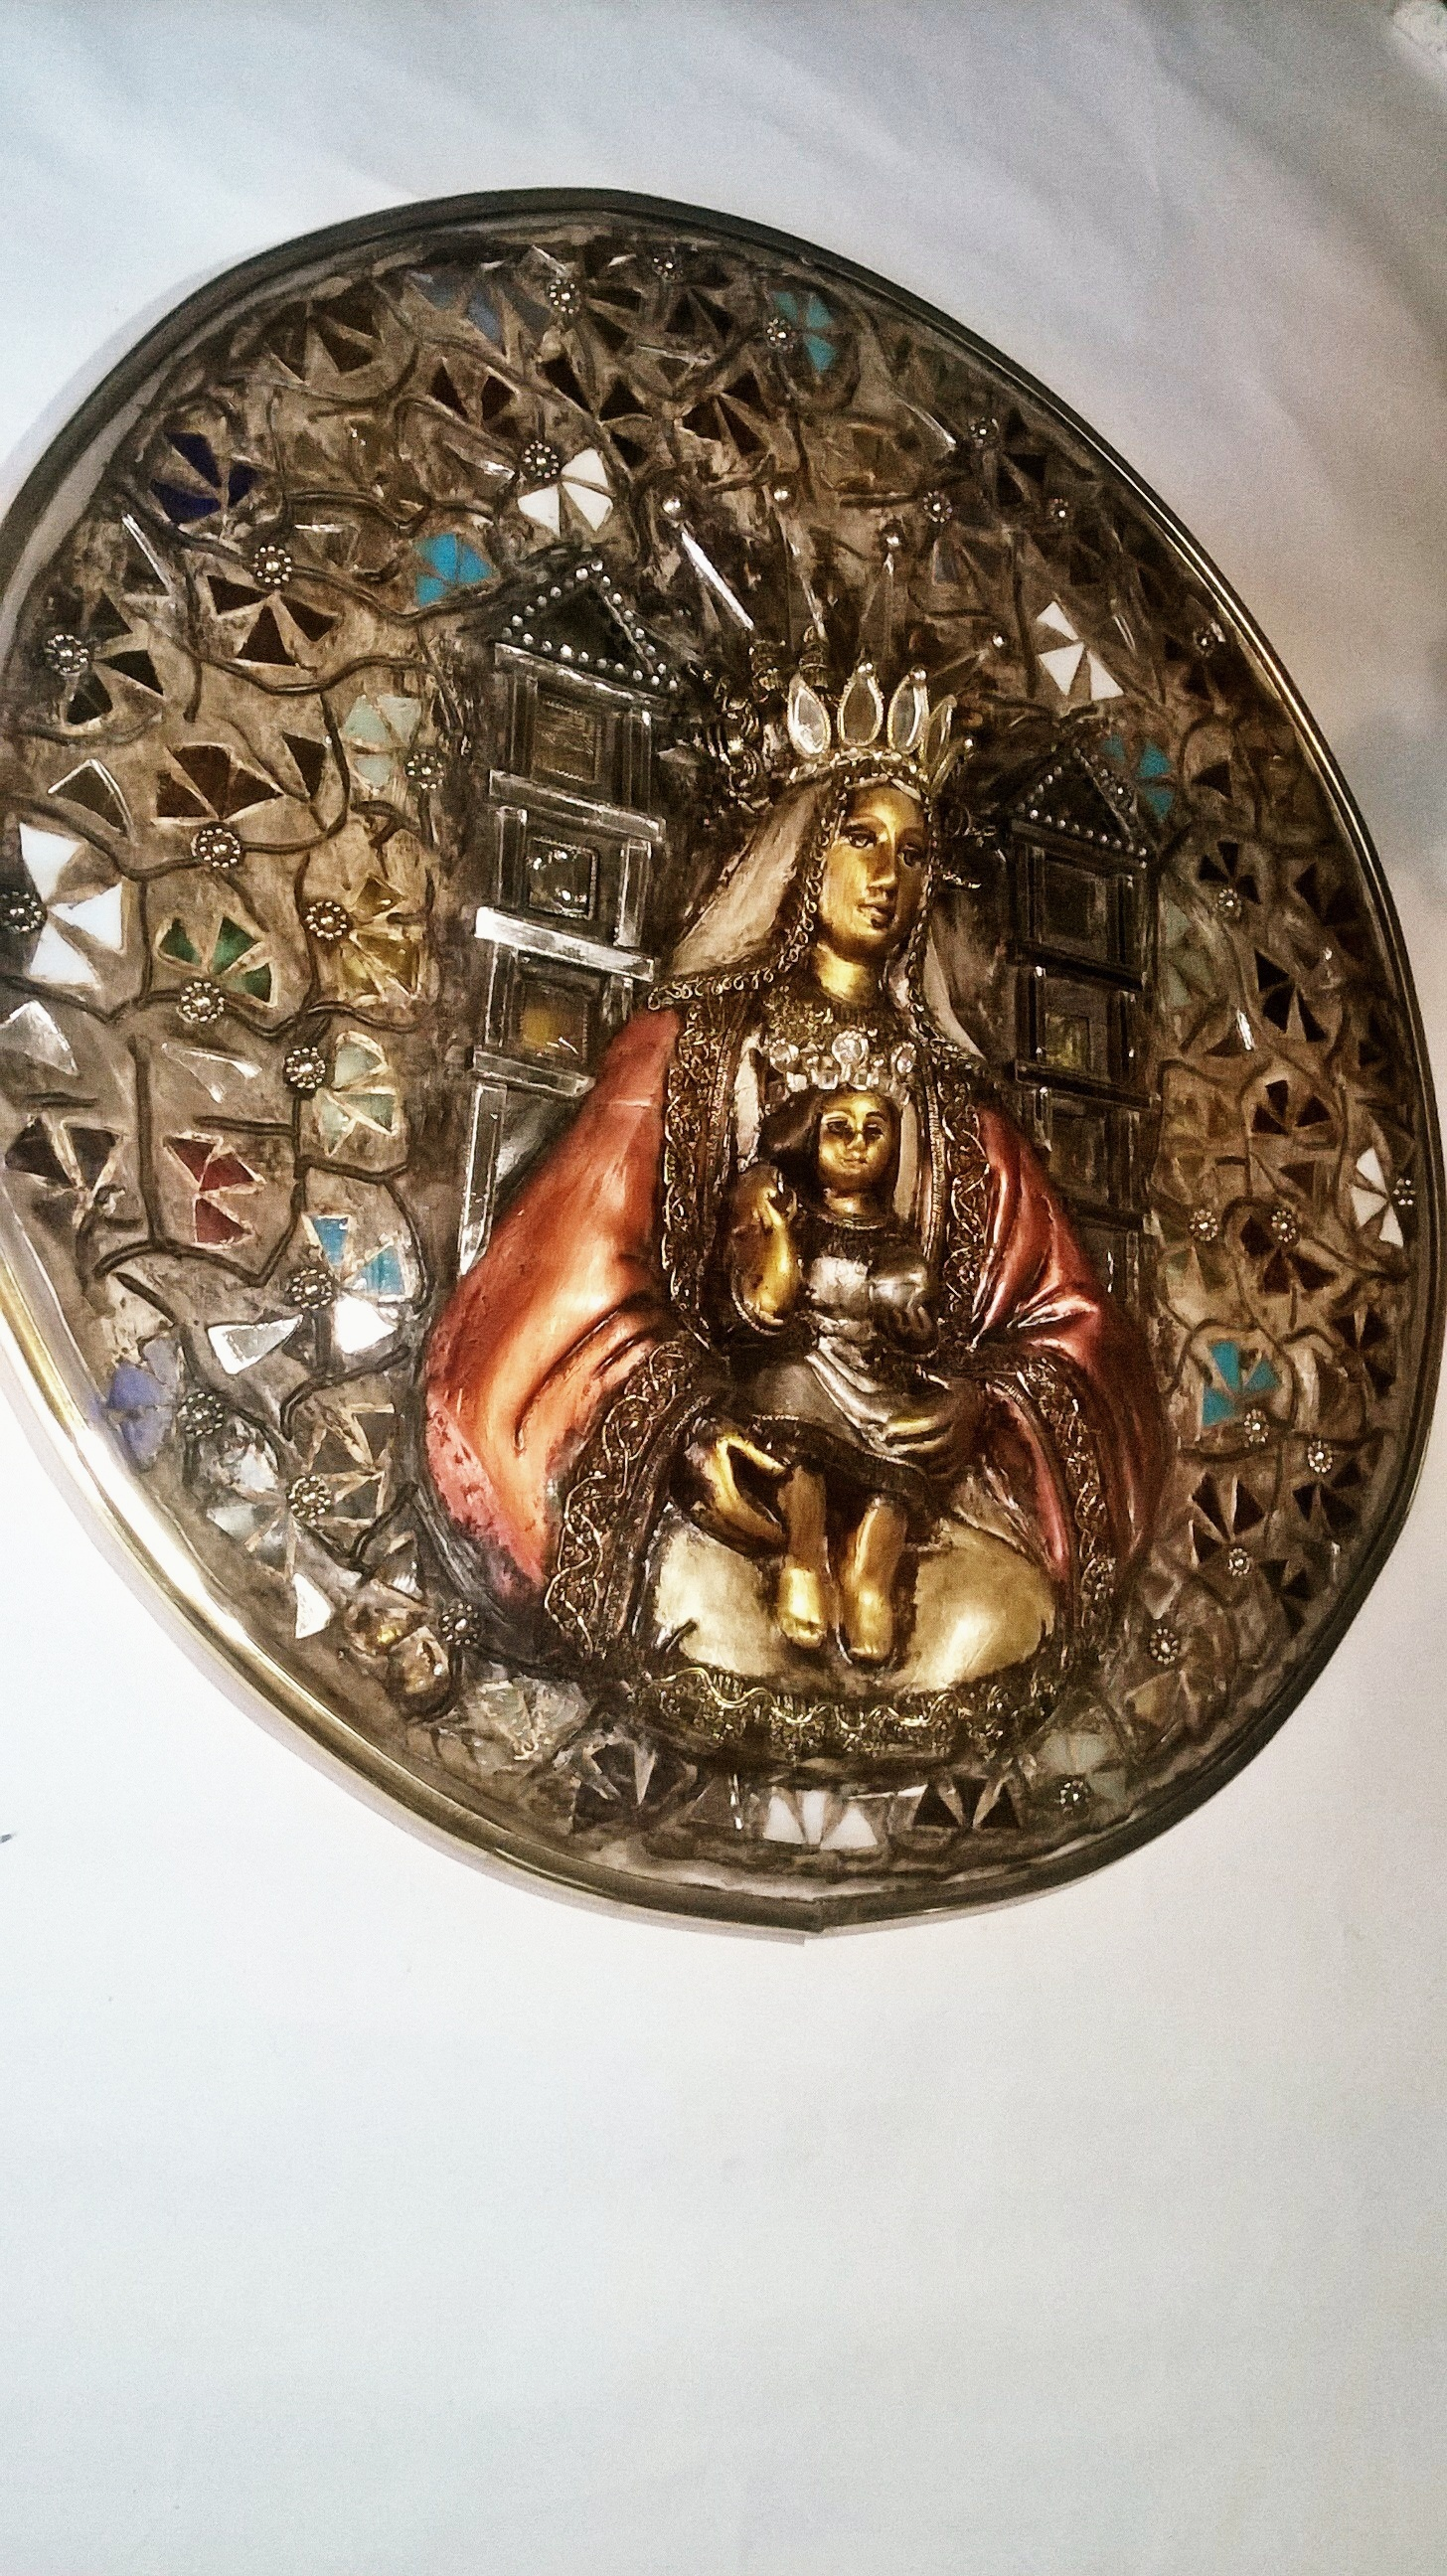 MEDALLION FOR WALL, ORIGINAL MOSAIC WITH MIRRORS EMBELLISHED WITH VIRGIN OF COROMOTO